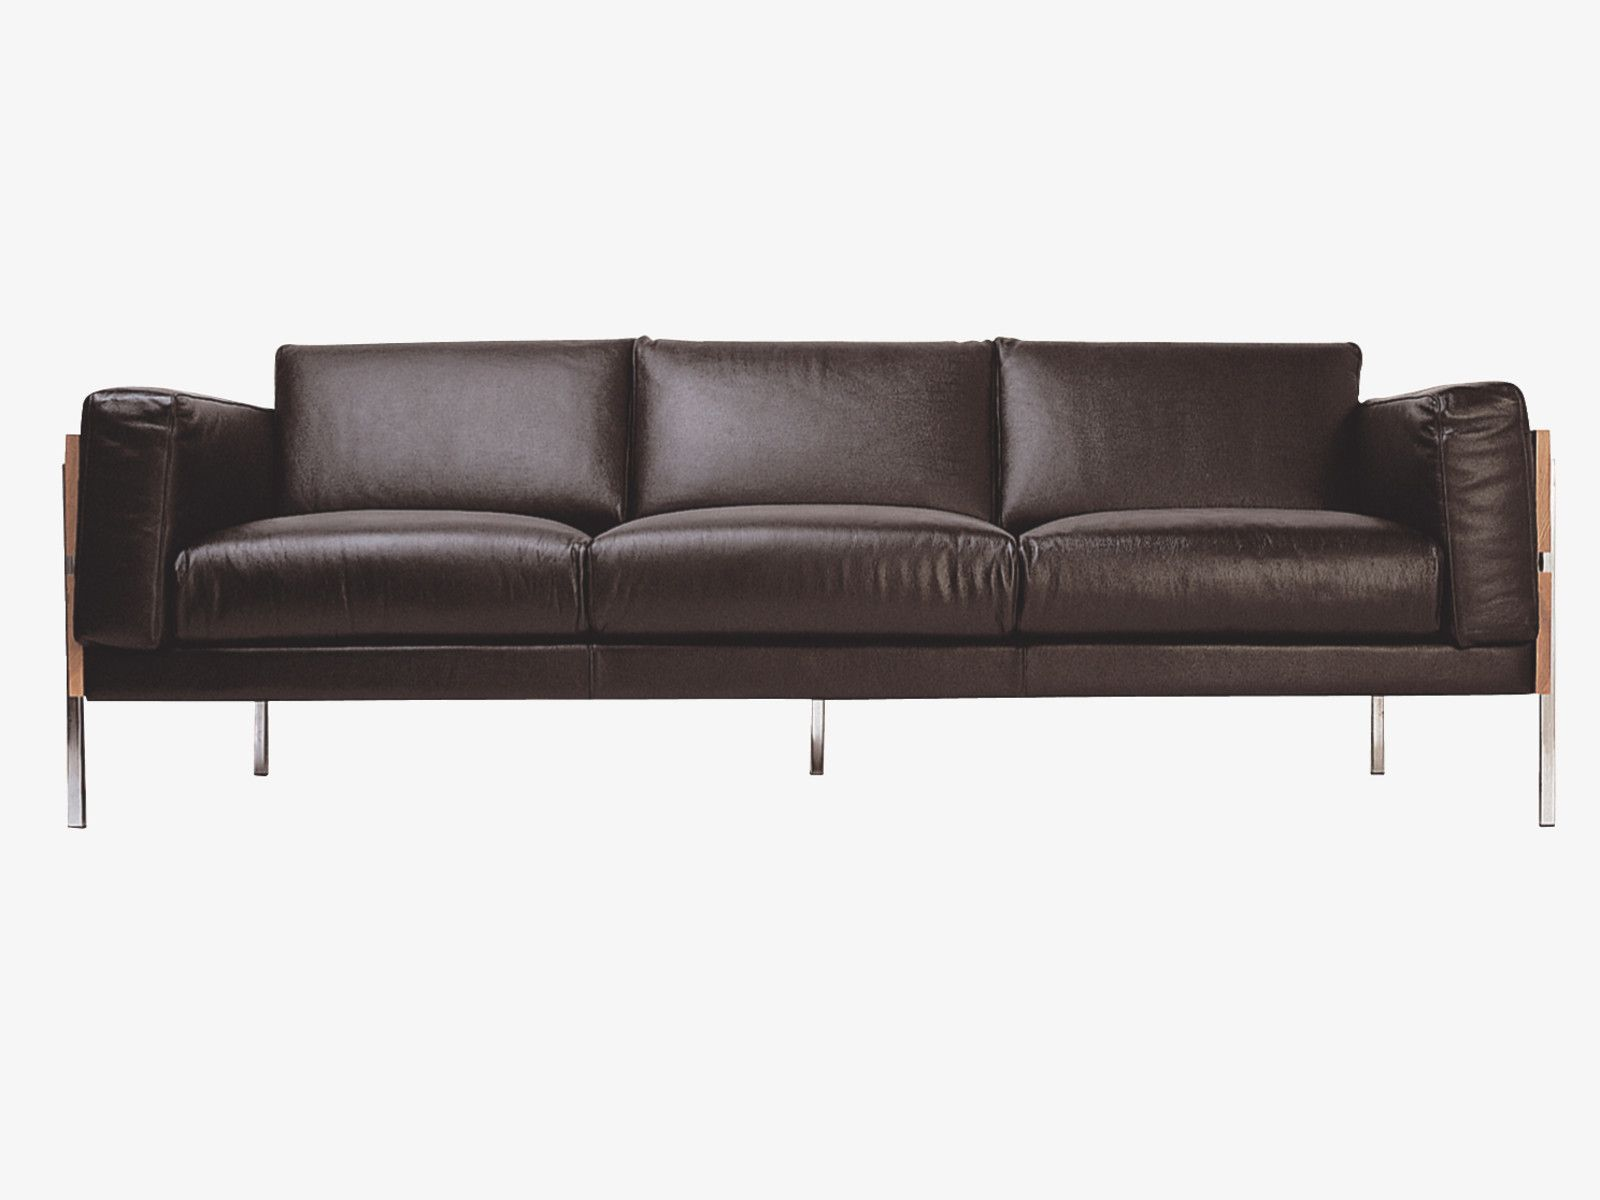 Check Out The New Furniture And Accessories From Our New SS - Furniture forum